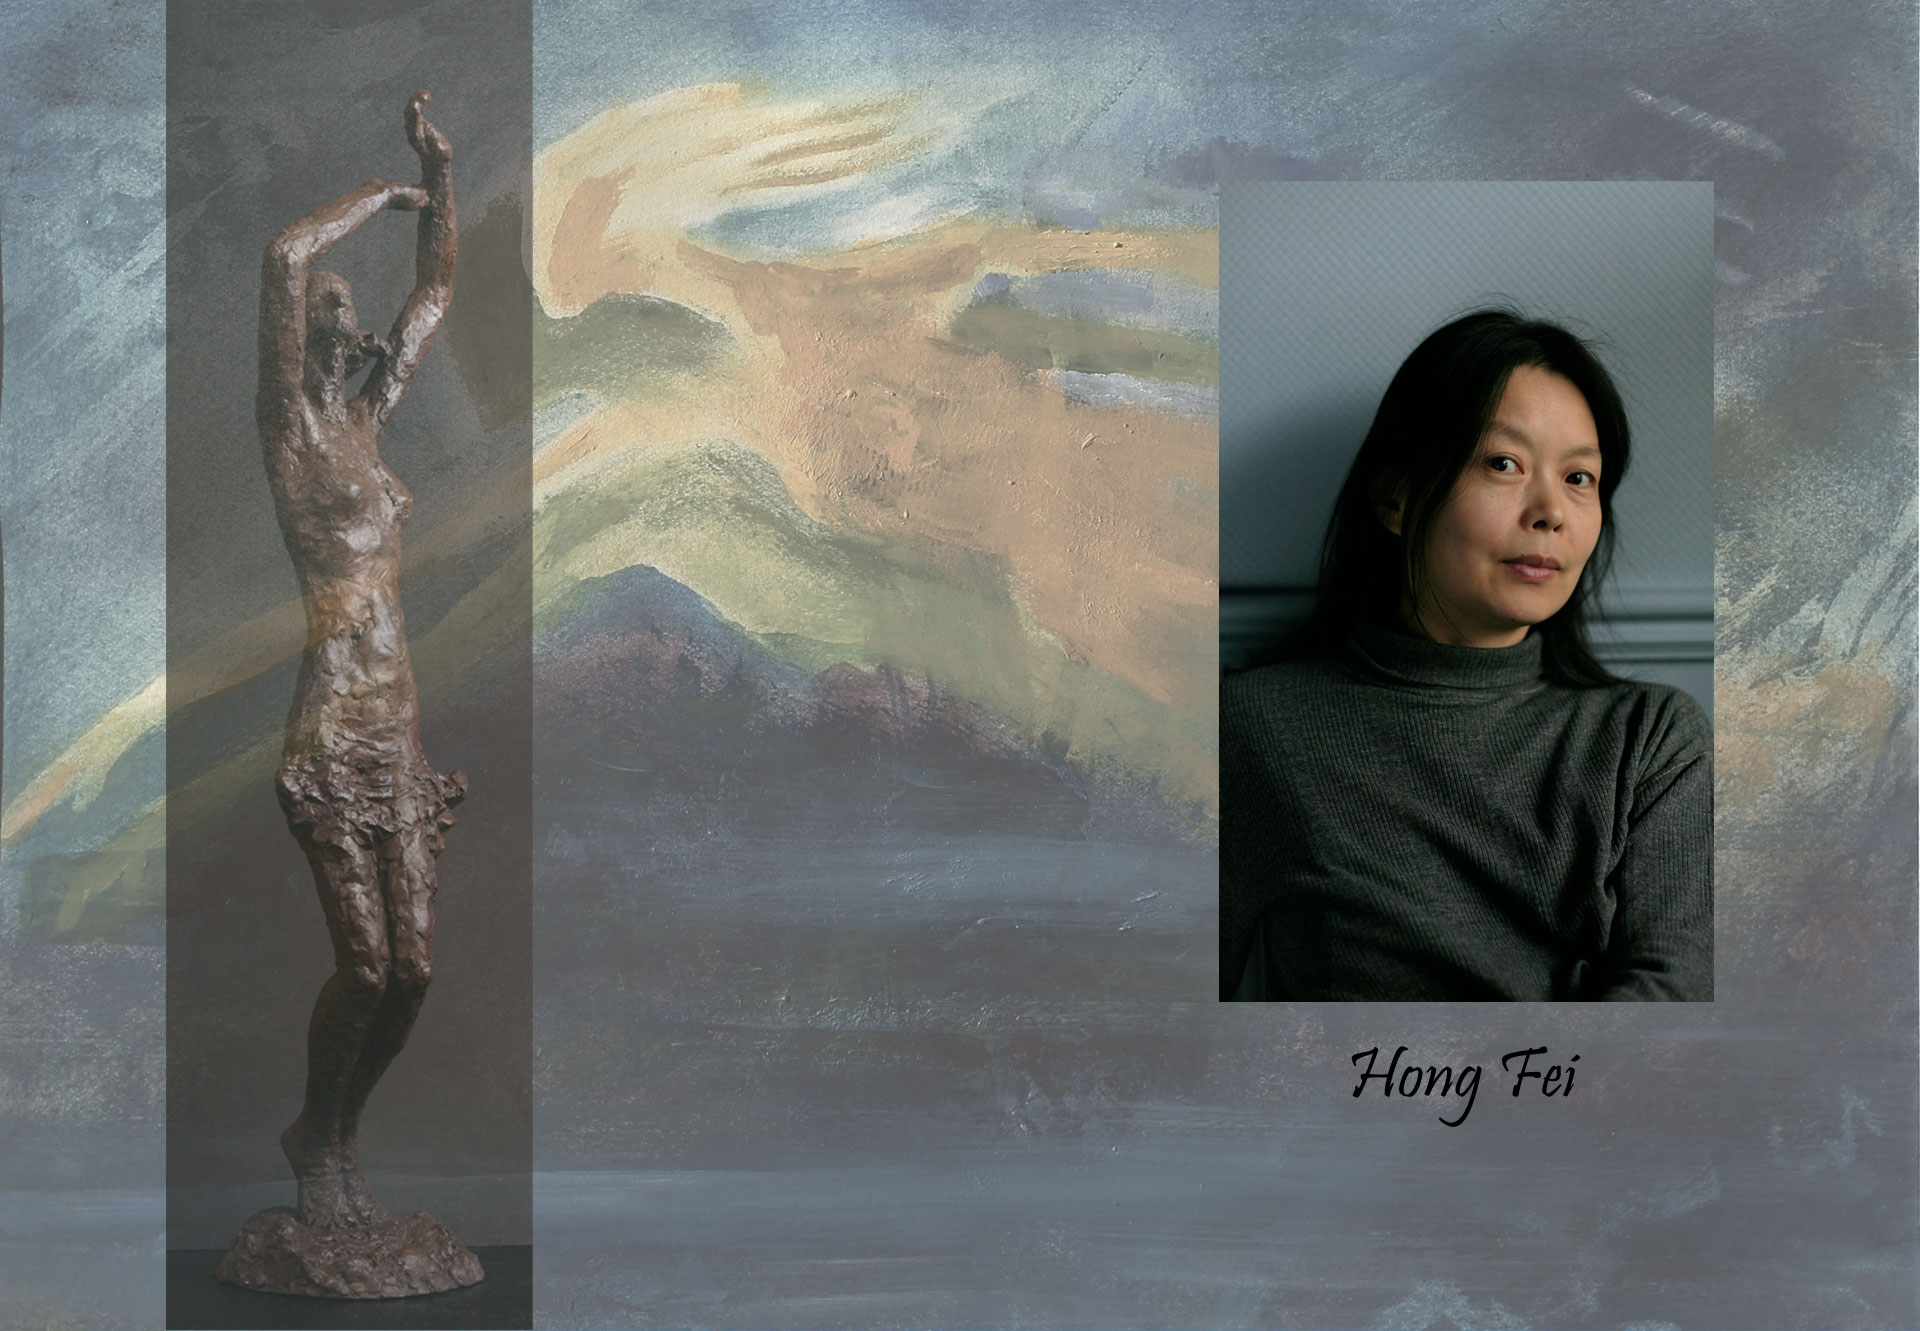 Picture of Hong Fei